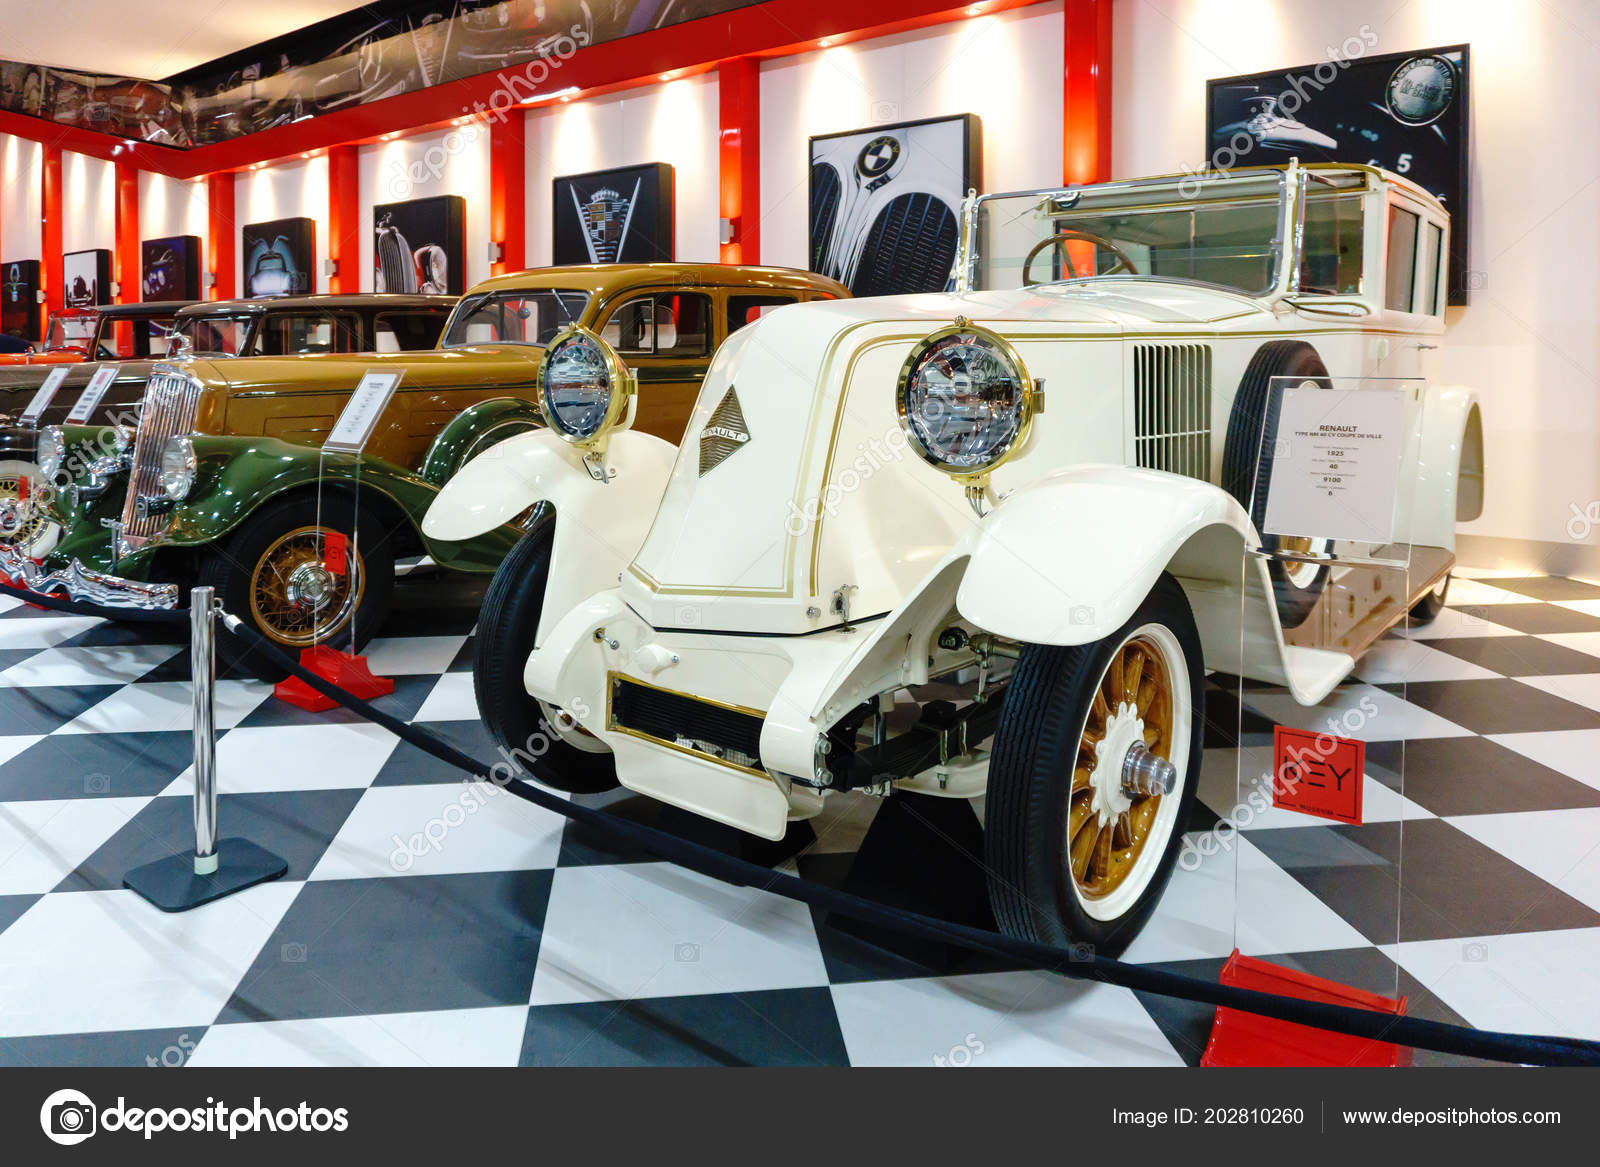 Izmir Turkey June 2018 View Classical Vehicles Key Museum Has – Stock  Editorial Photo © niglaynike #202810260